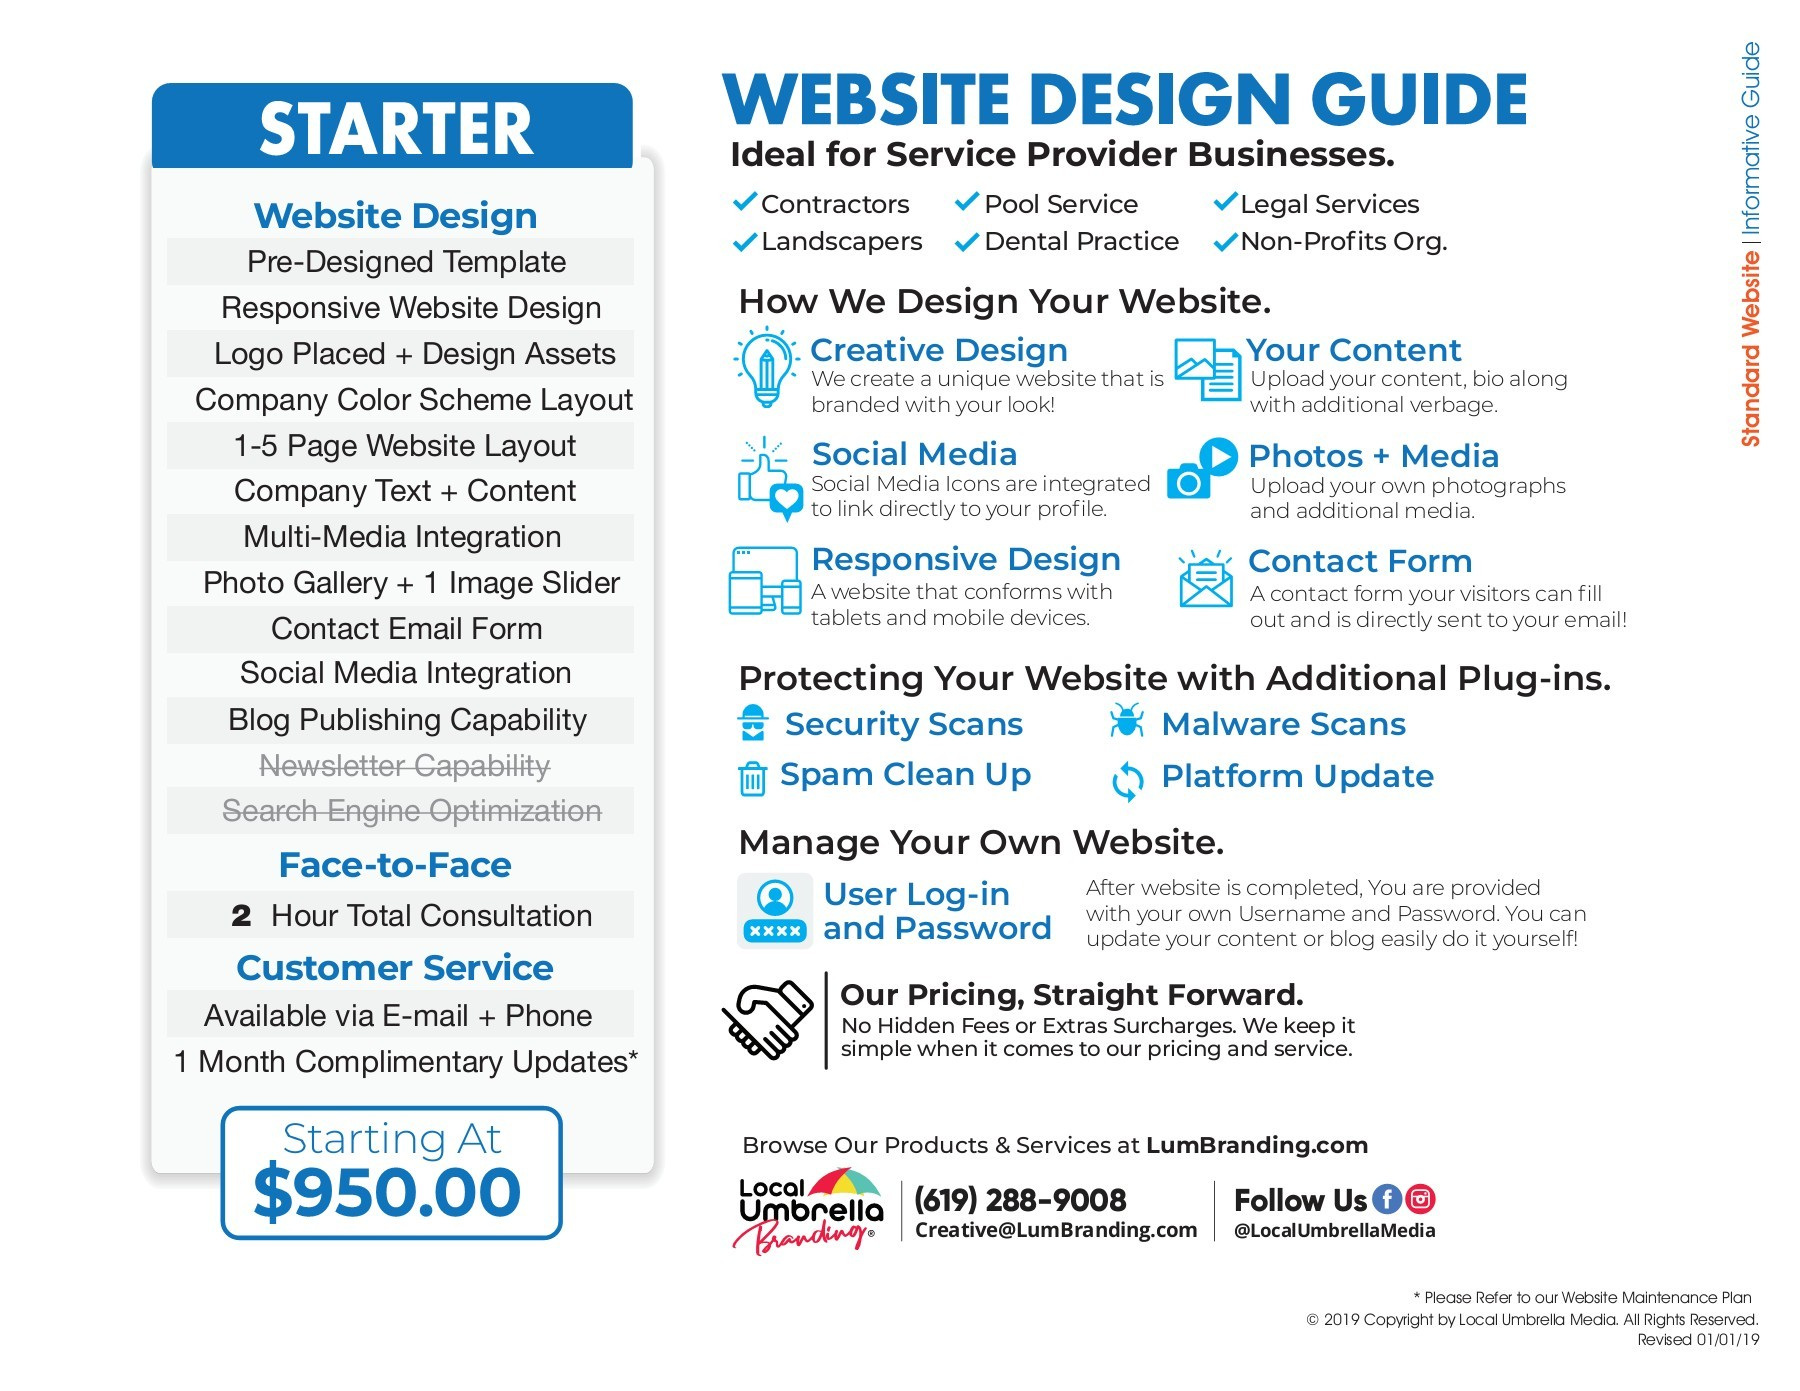 Web Design Standard Invoice How We Do It Flipbook By Local Umbrella Media Publications Fliphtml5